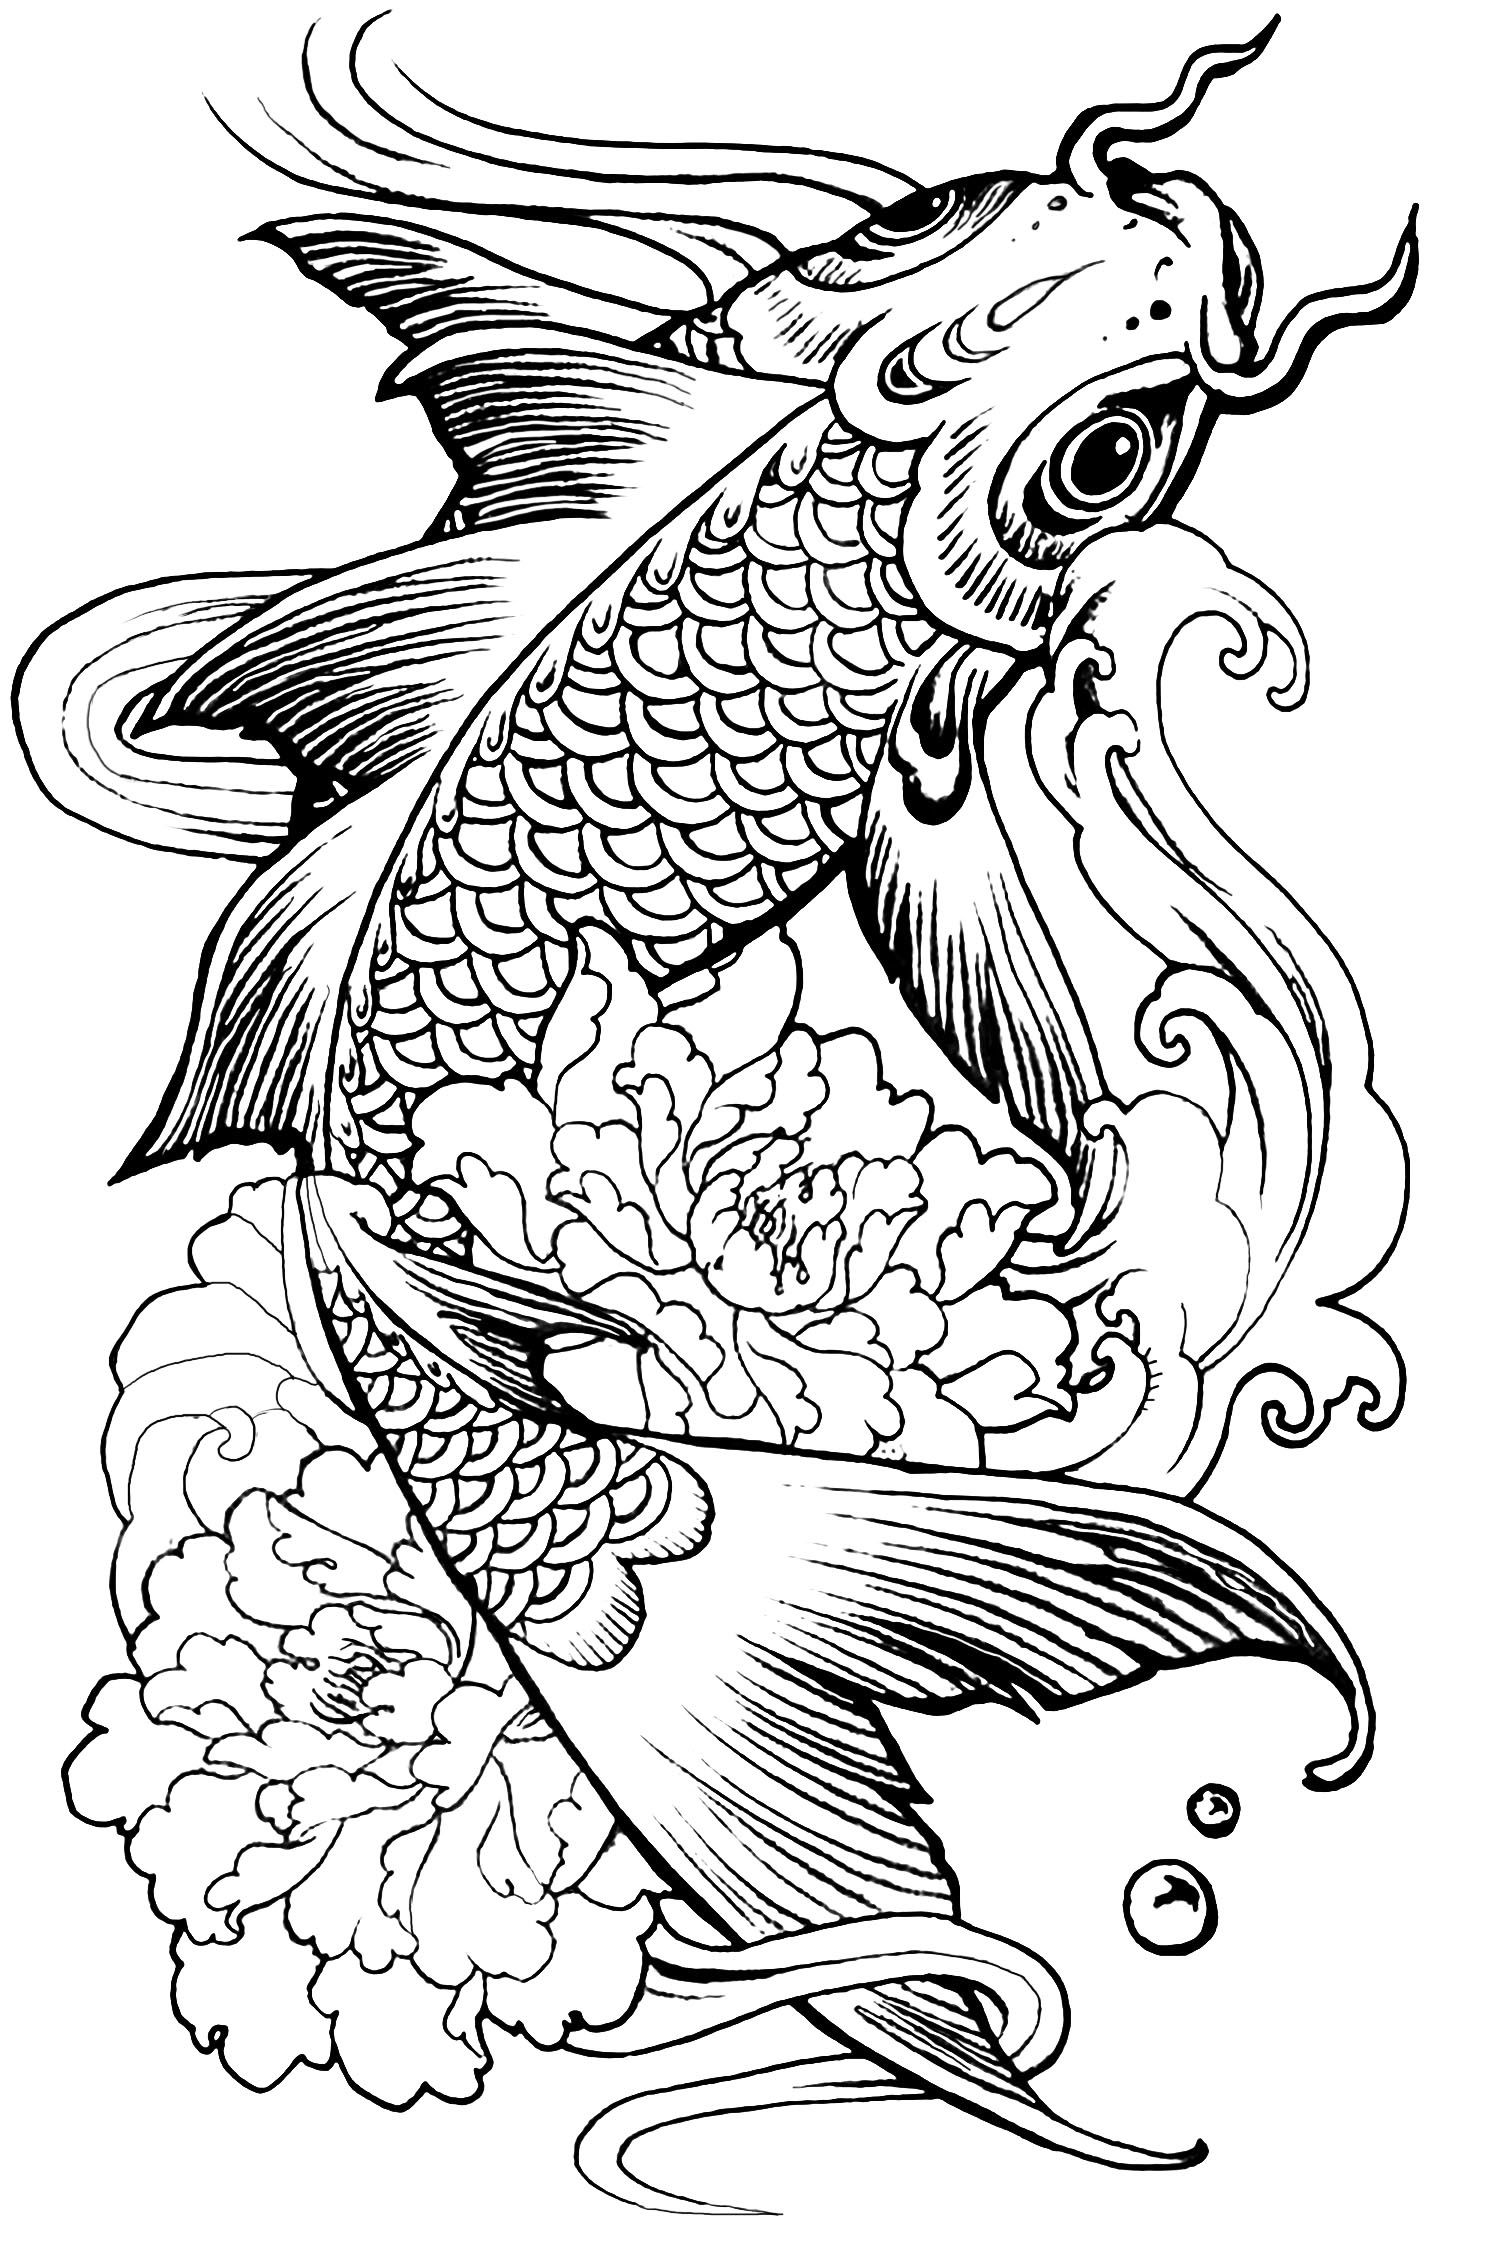 Complex fish carp Coloring page of a beautiful fish